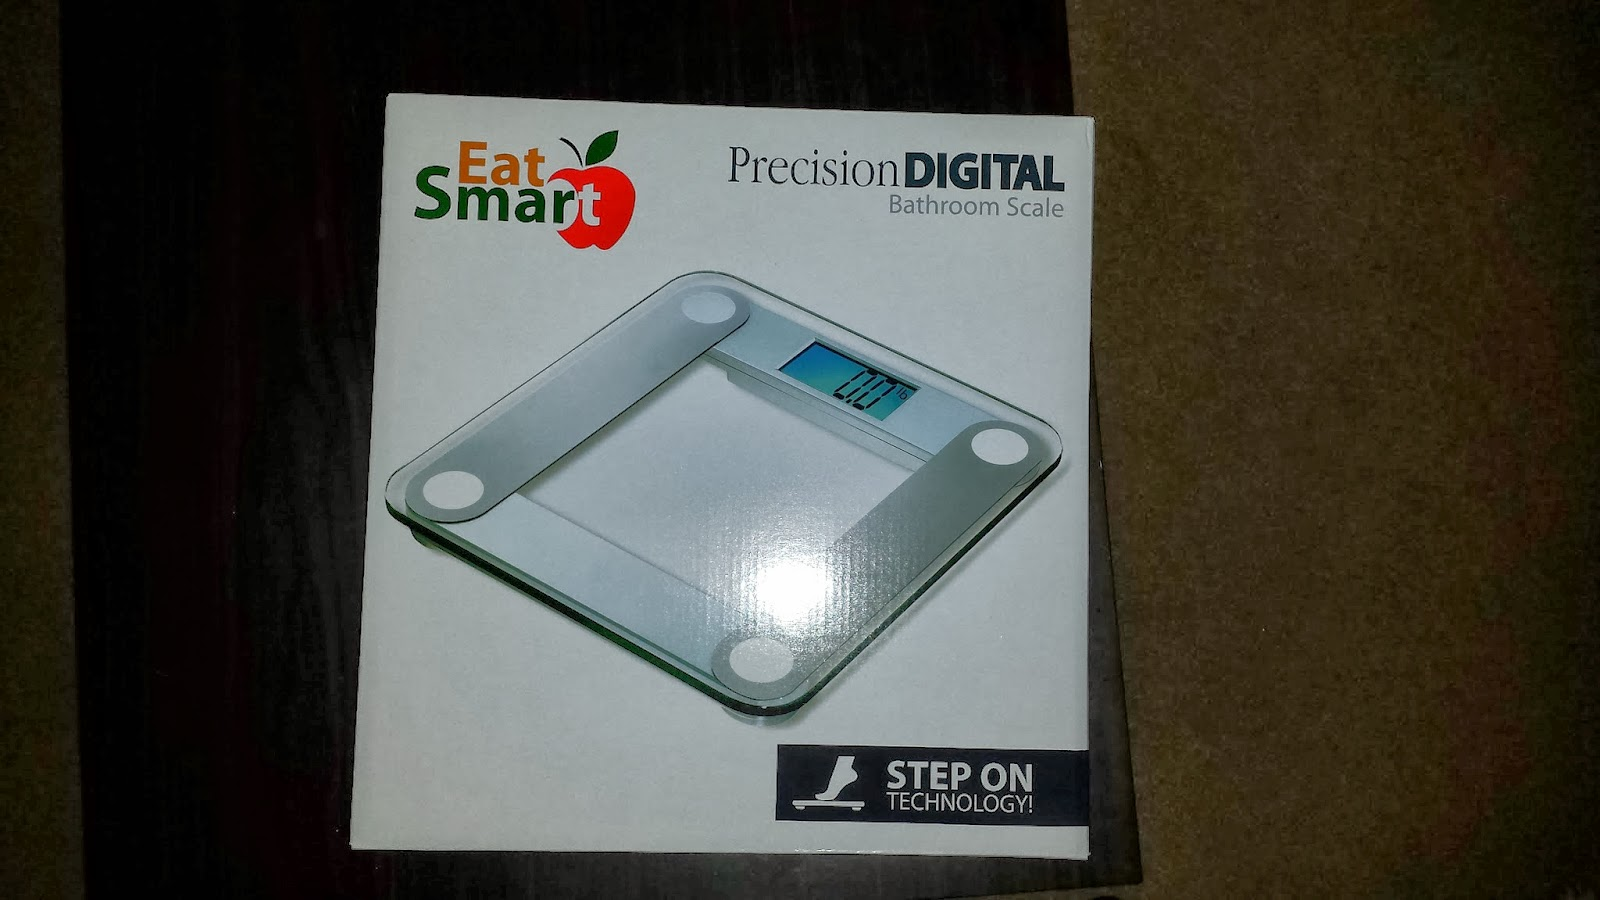 Product spotlight meet the eatsmart precision digital bathroom scale - Yay New Scale In The Box